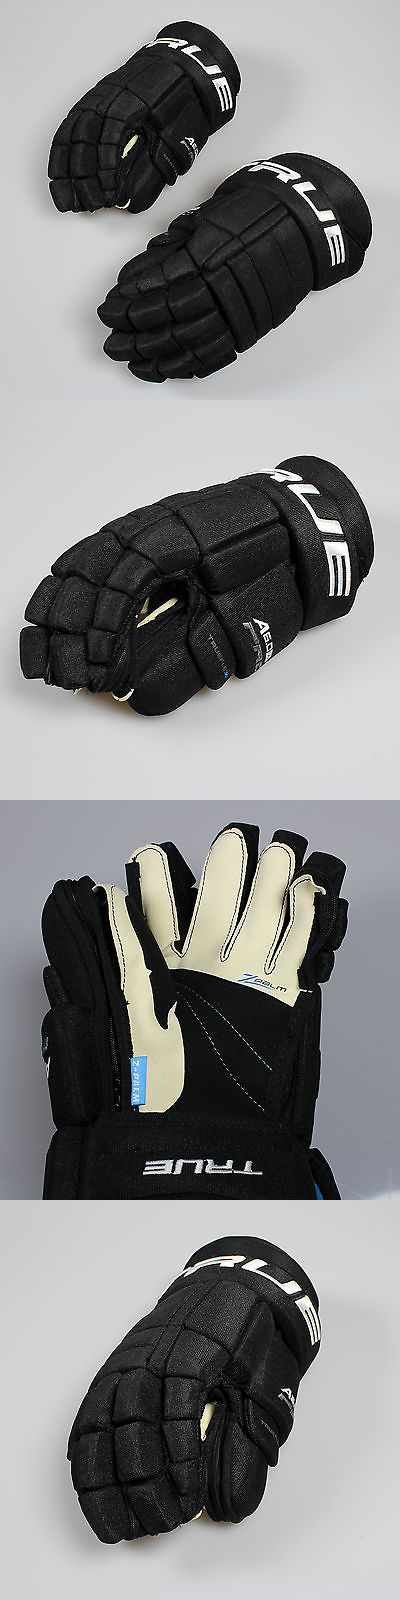 Gloves 20853: New True A6.0 Senior Sbp Pro Hockey Gloves With Z-Palm Interchangeable Palm -> BUY IT NOW ONLY: $179.99 on eBay!